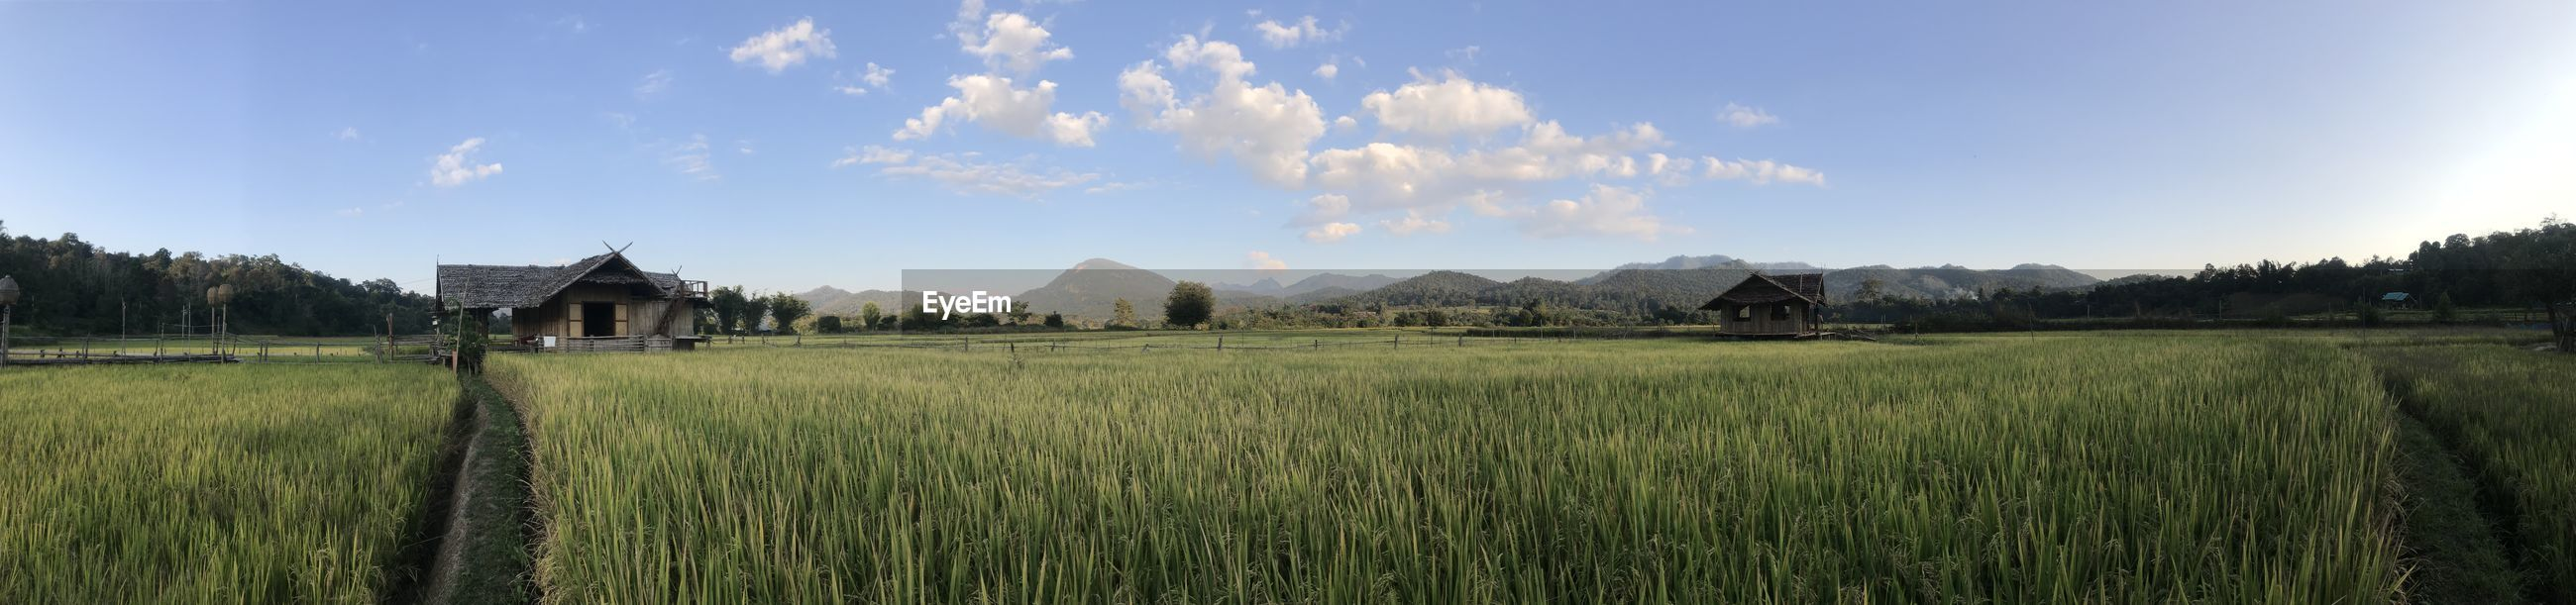 Panoramic shot of agricultural field against sky